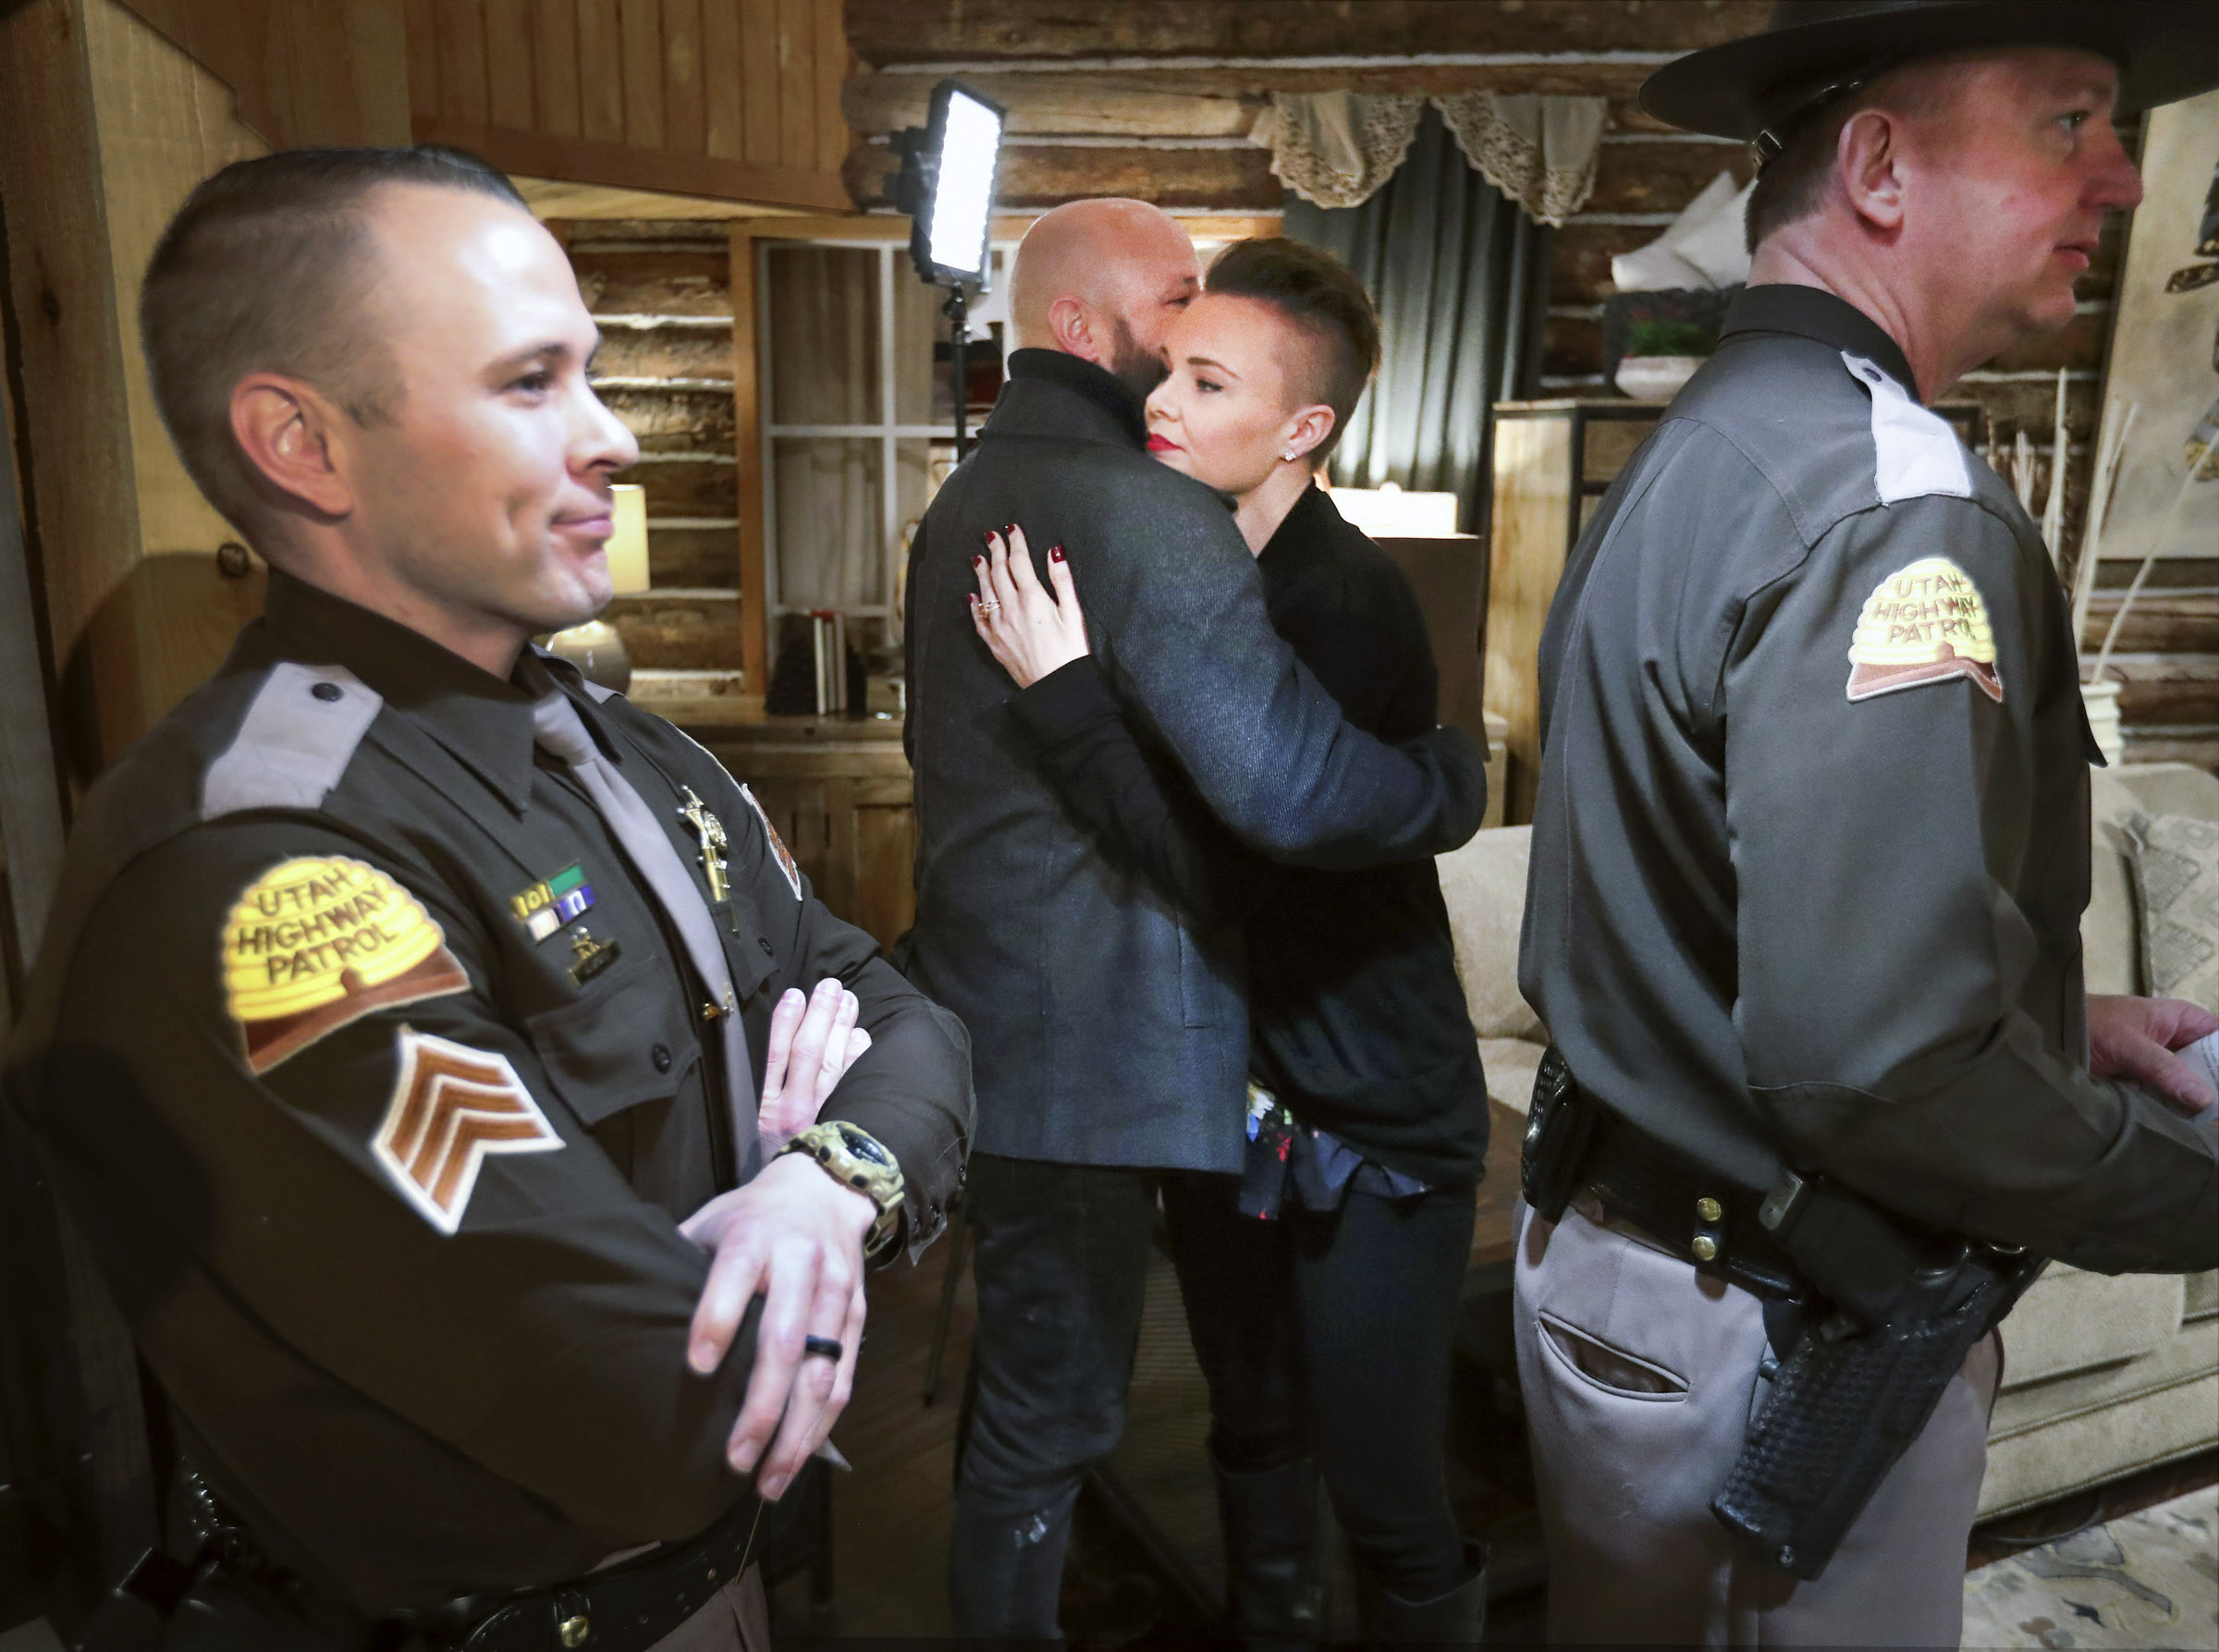 Hillary Staska, center right, hugs her husband, Justin Staska, as she stands with Utah Highway Patrol Sgt. Nick Bricker, left, and Utah Highway Patrol Lt. Col. Mark Zesiger, after she and Bricker talked about her arrest for DUI four years ago during a press conference at the RC Willey store in South Salt Lake on Wednesday, Dec. 11, 2019. Staska credits Bricker and the arrest with saving her life. The press conference kicked off the Utah Department of Public Safety's annual holiday DUI enforcement effort campaign.